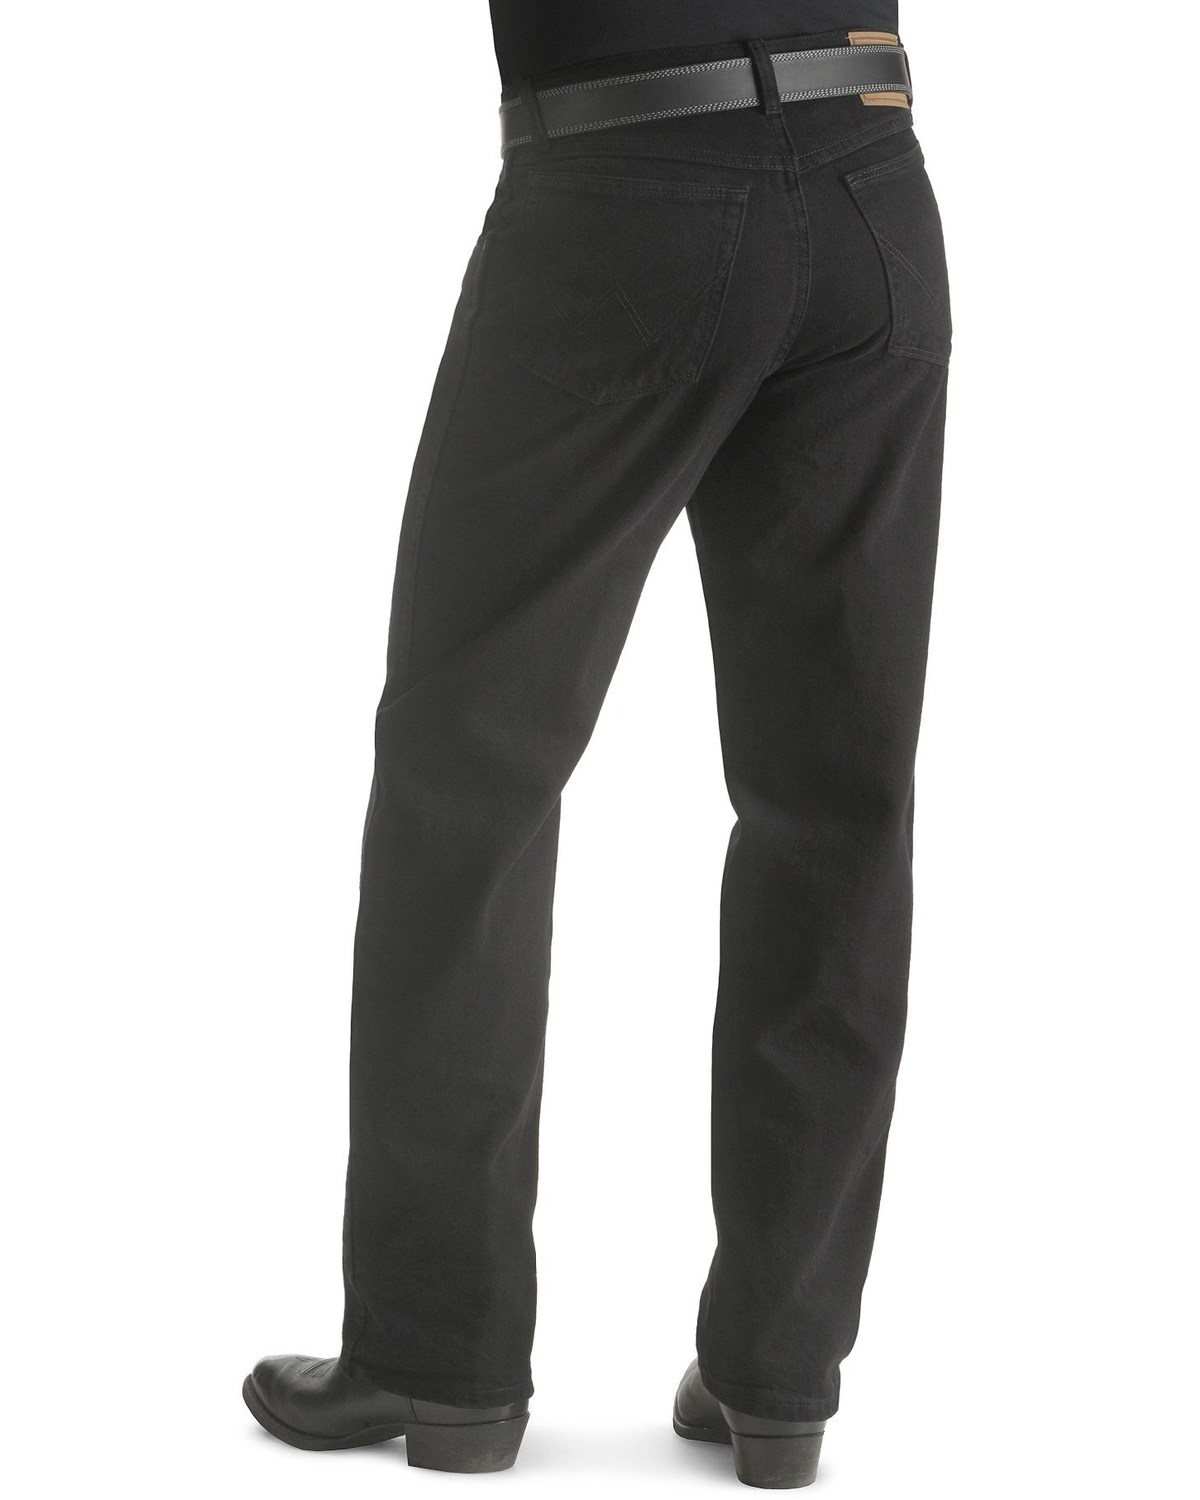 wrangler rugged wear men's relaxed fit jeans | boot barn